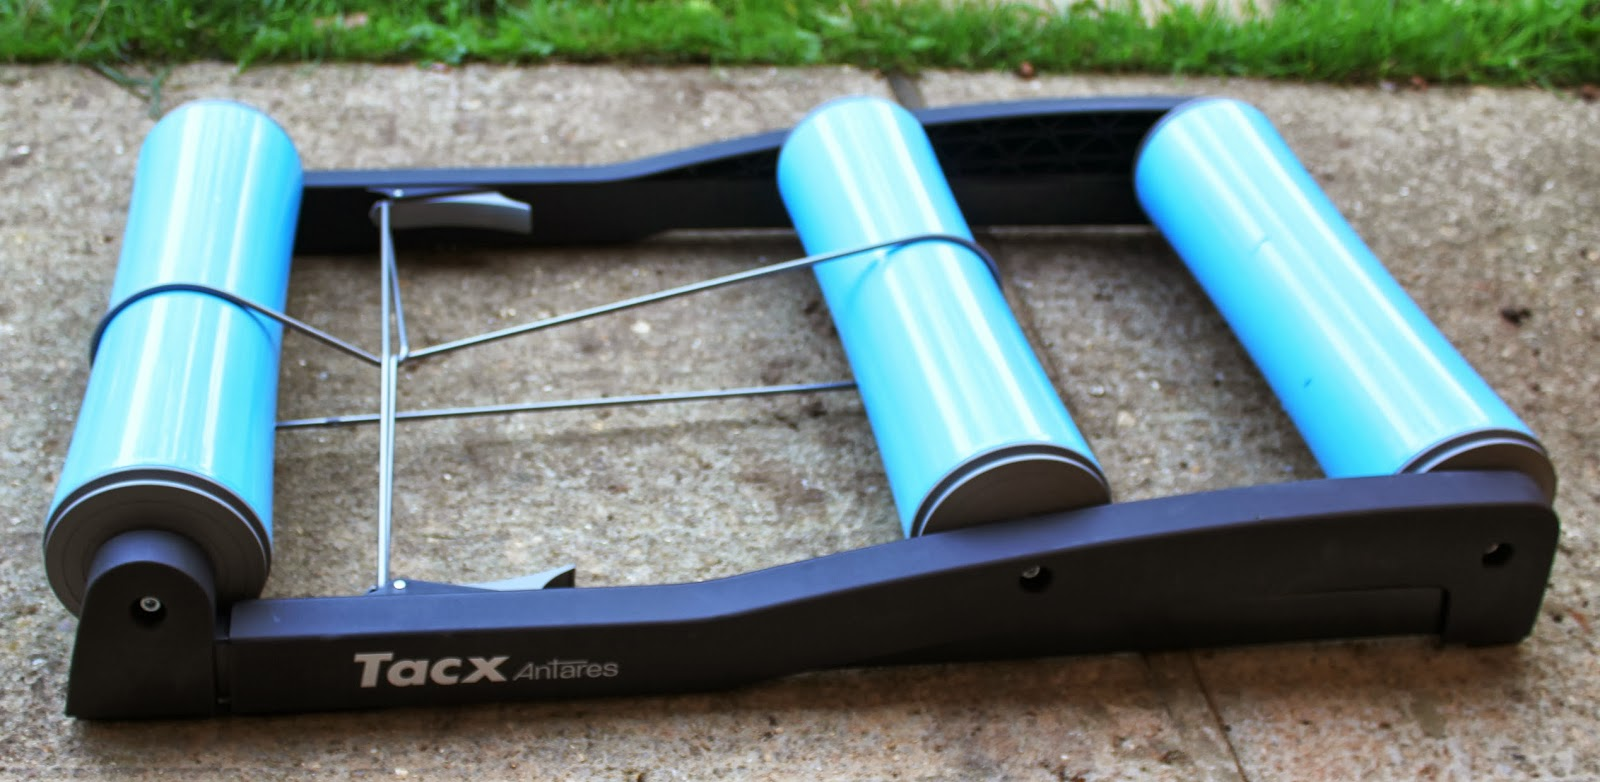 Review – Tacx Antares Cycle Training Rollers